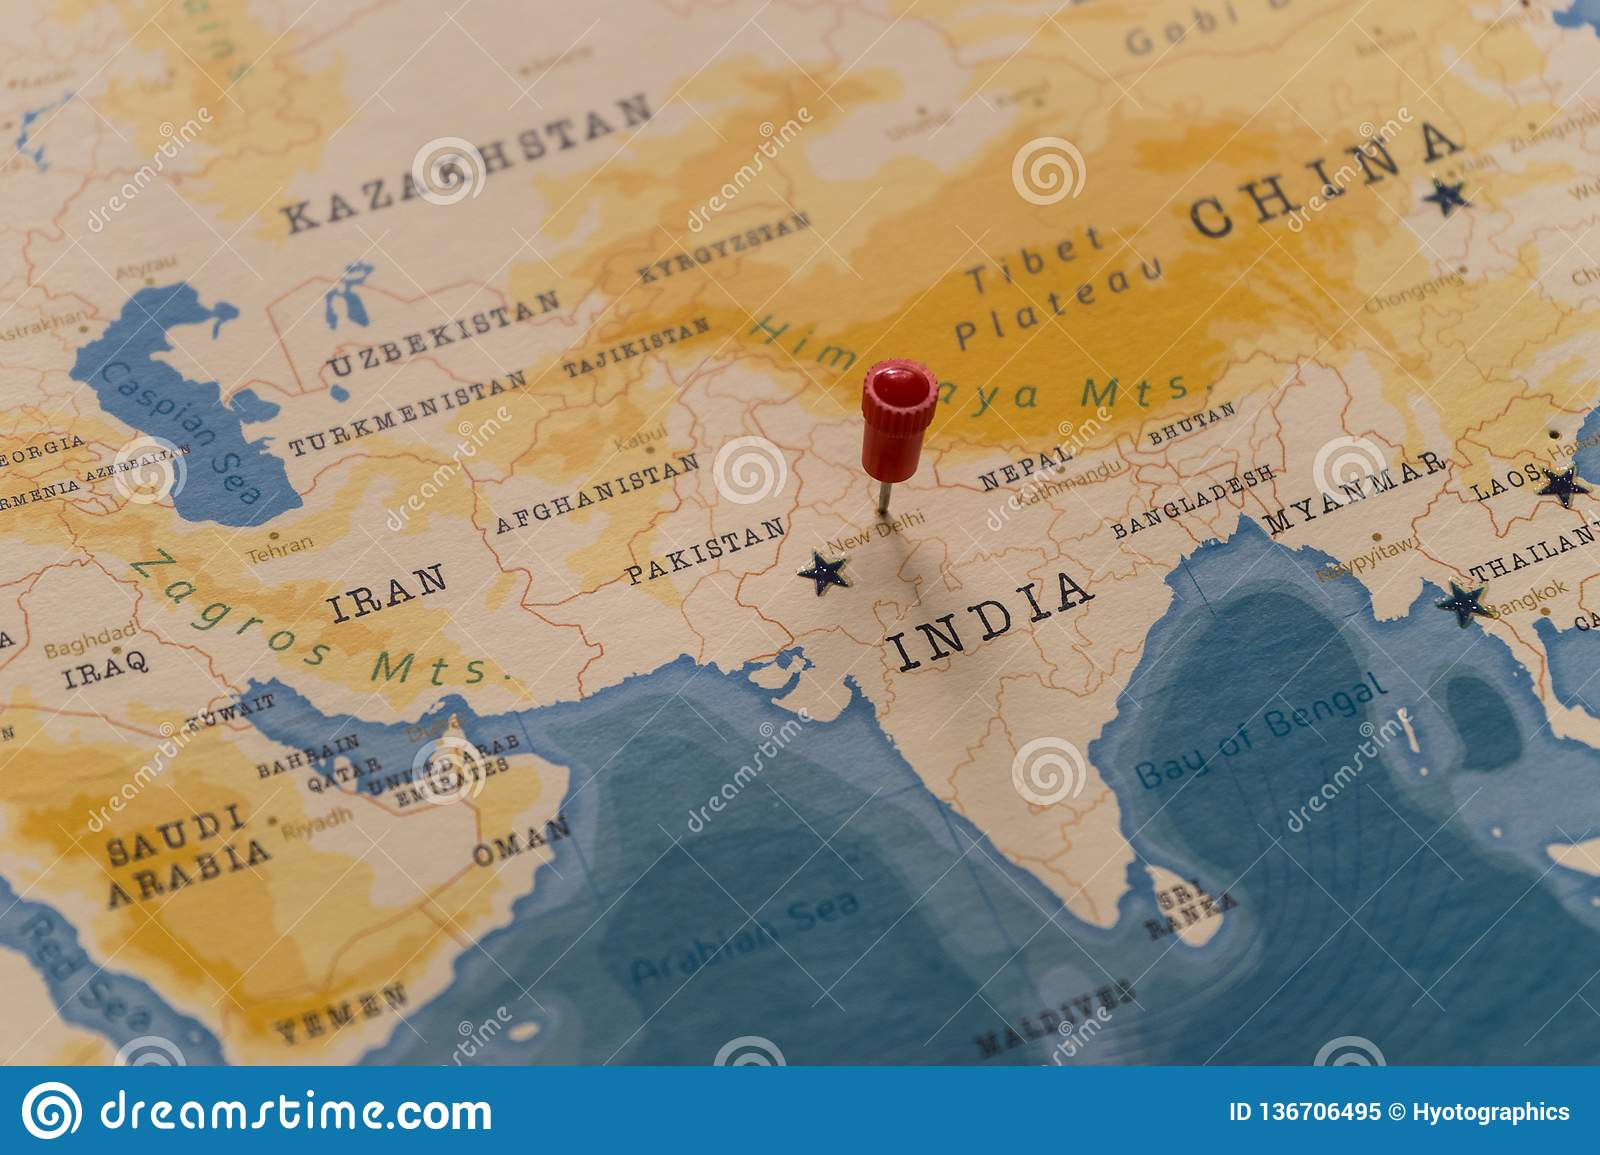 A Pin On New Delhi India In The World Map Stock Image Image Of